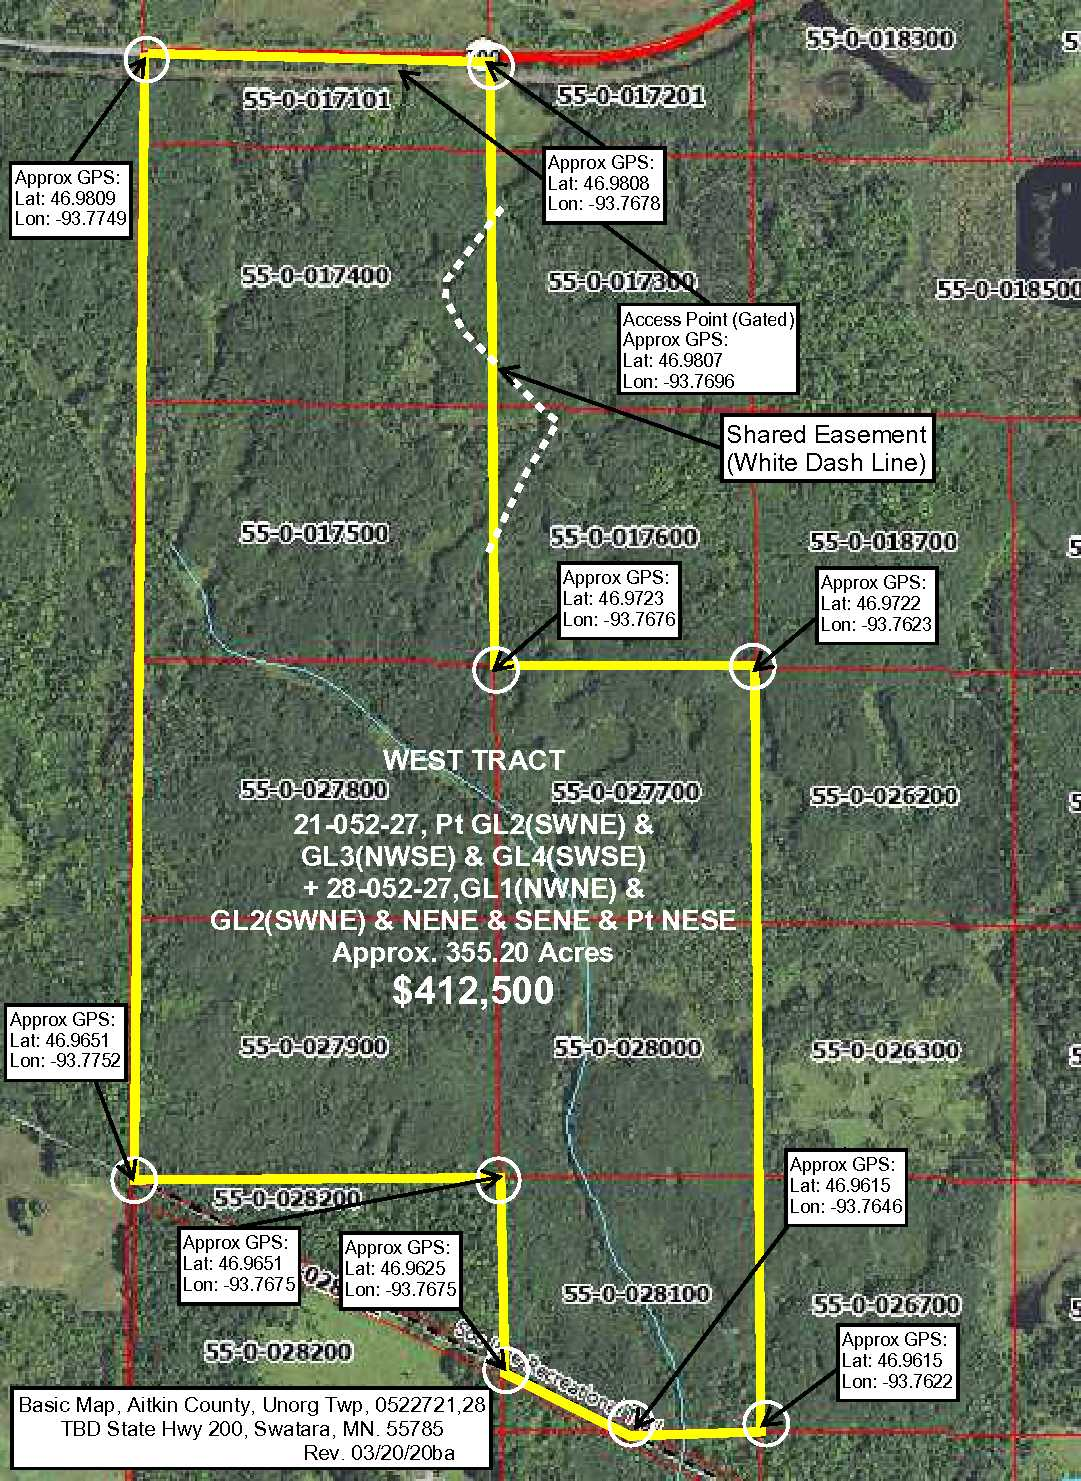 West Tract, 21&28-052-27, State Hwy #200, Unorganized, Swatara, Aitkin